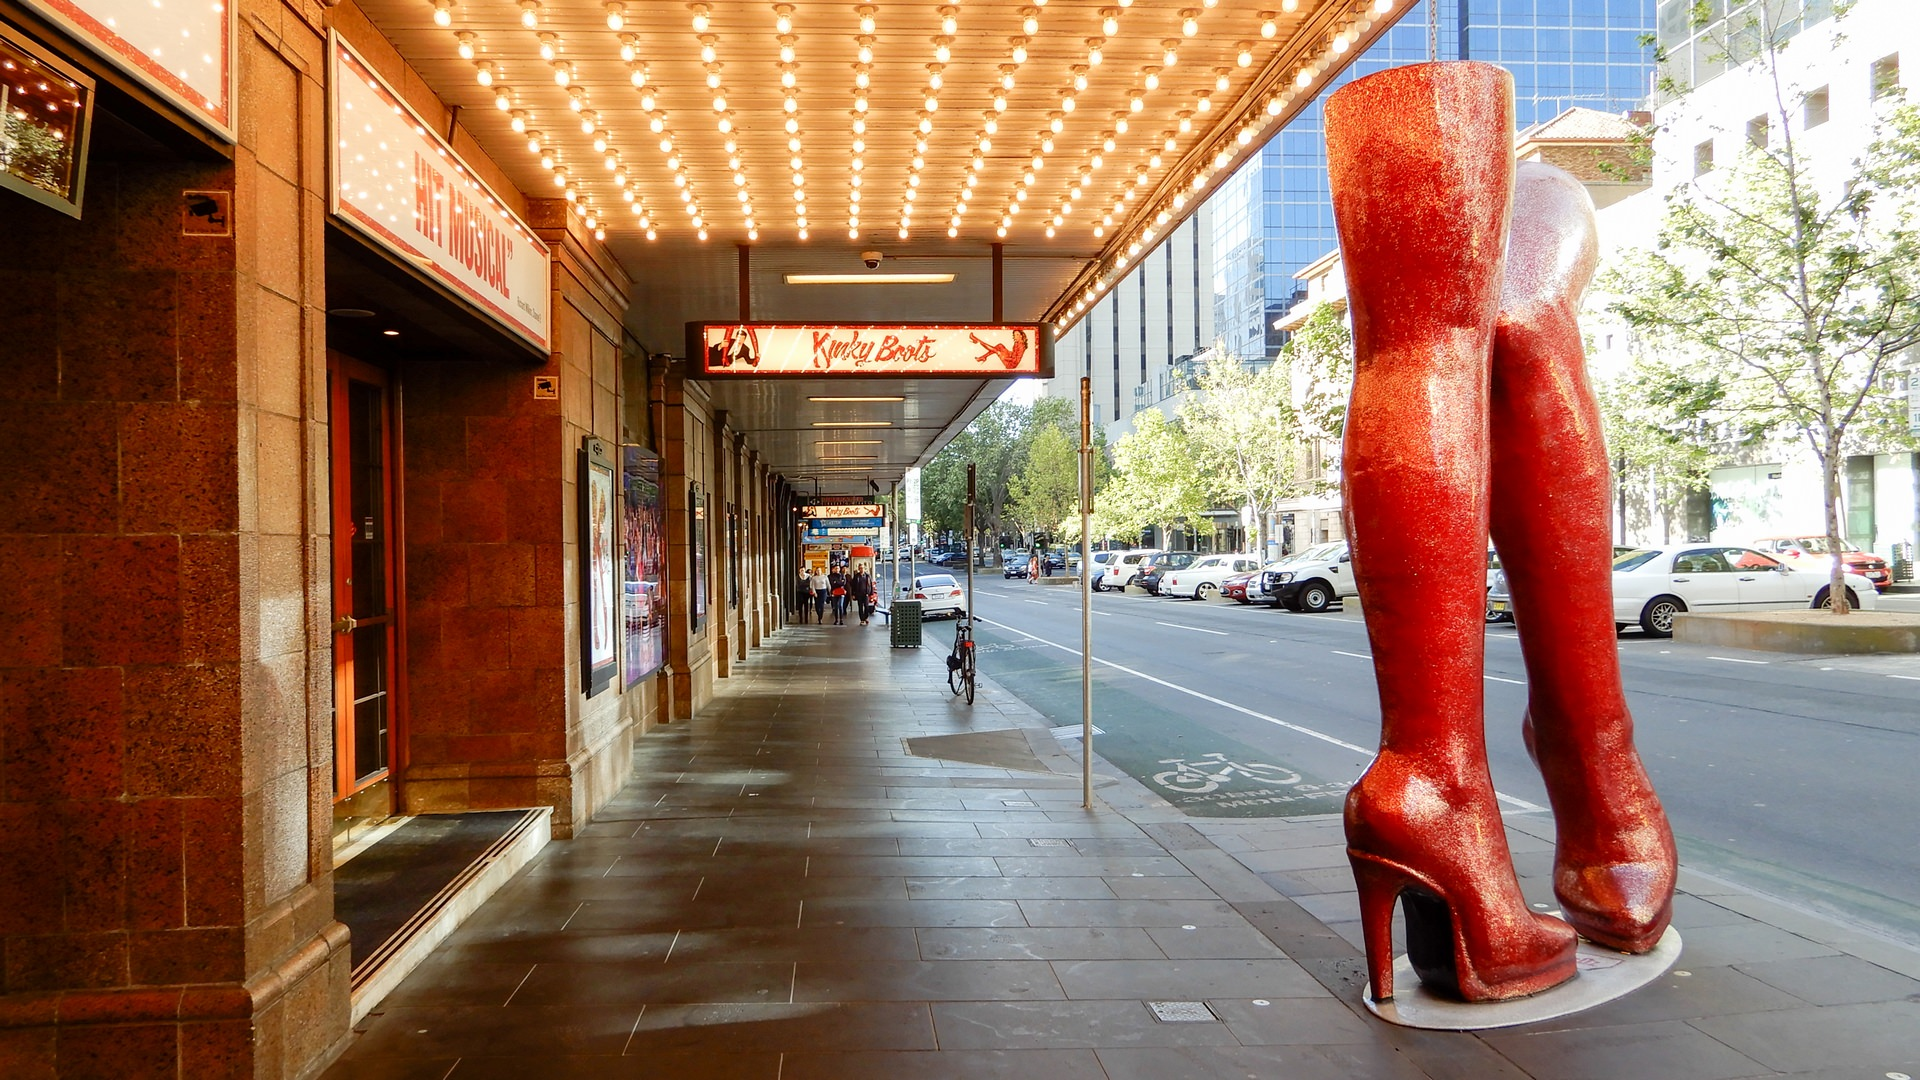 Kinky Boots Exhibition Street